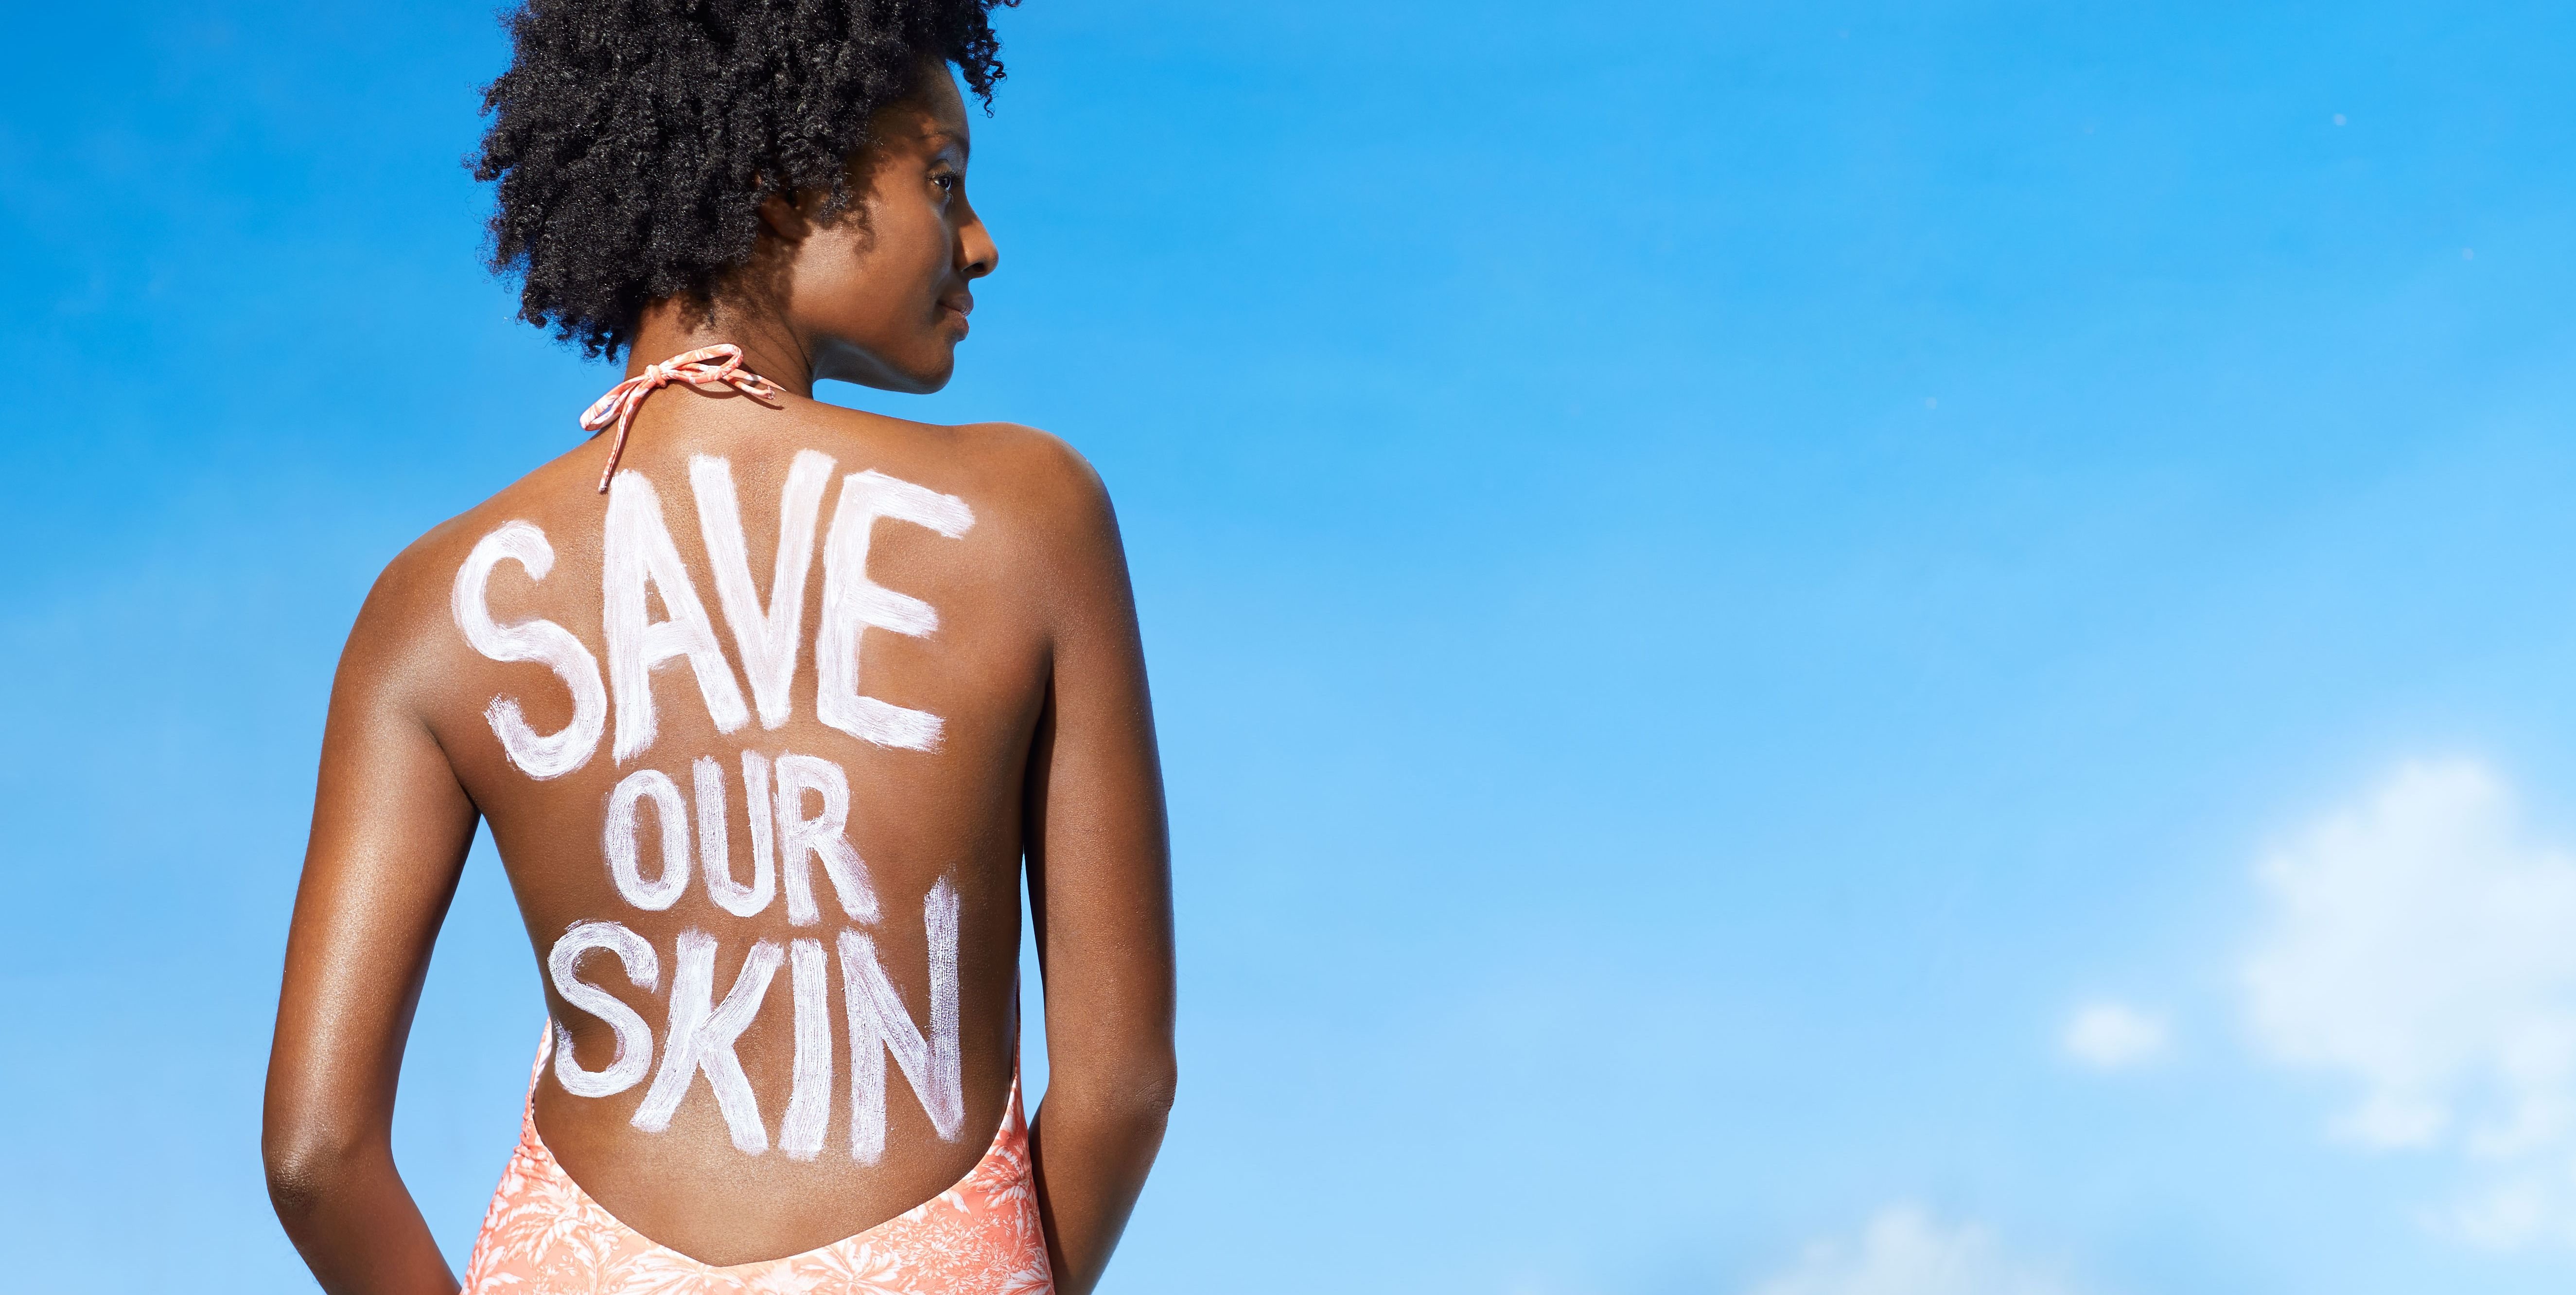 Black woman in bathing suit with sunscreen